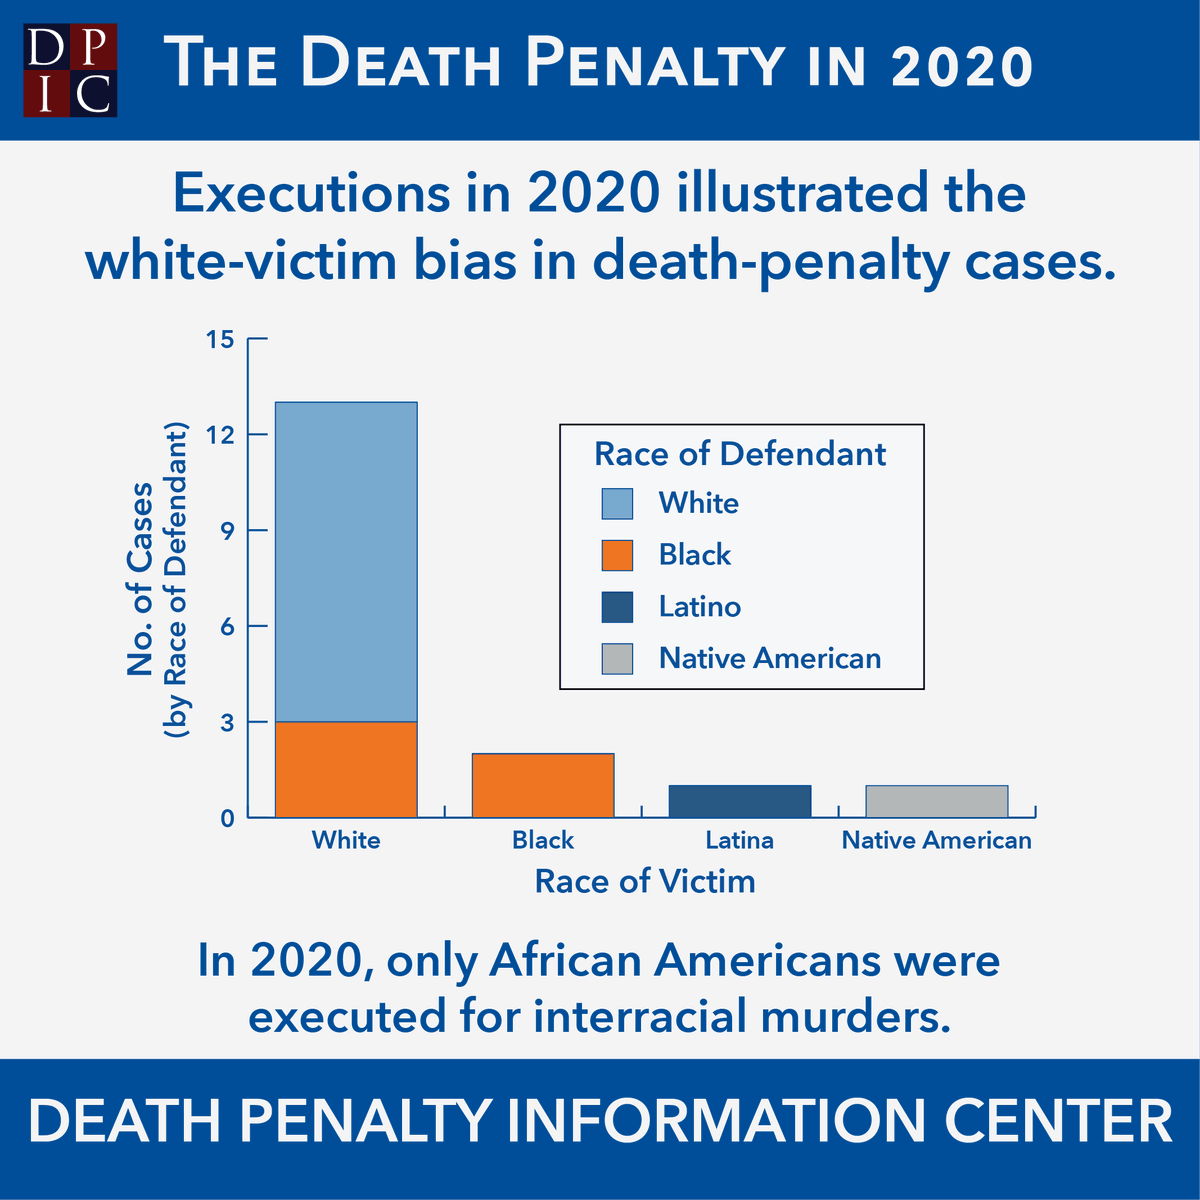 #TheDeathPenaltyIn2020—More than three-quarters of the executions in 2020 involved cases in which white victims were killed. Only African Americans were executed for murders of a victim who was of a different race. @DPInfoCtr #deathpenalty https://t.co/Iksl5sPa7Q